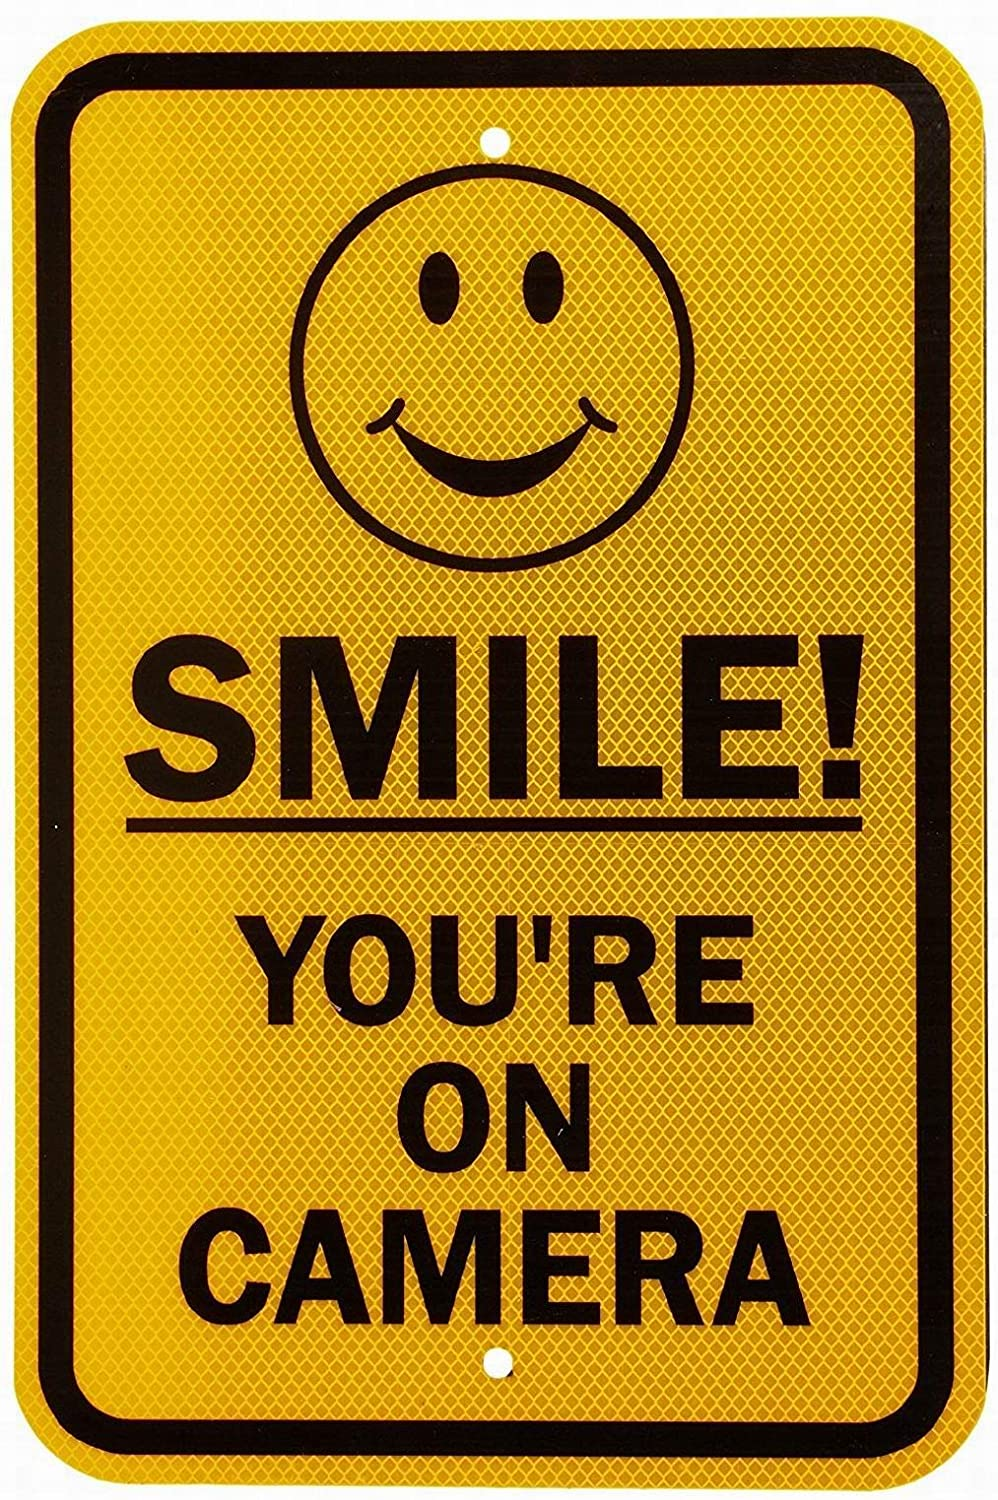 Owesoe Smile! Youre on Camera with Graphic Safety Sign Notice Sign 12x16 Street Road Warning Sign Wall Decor